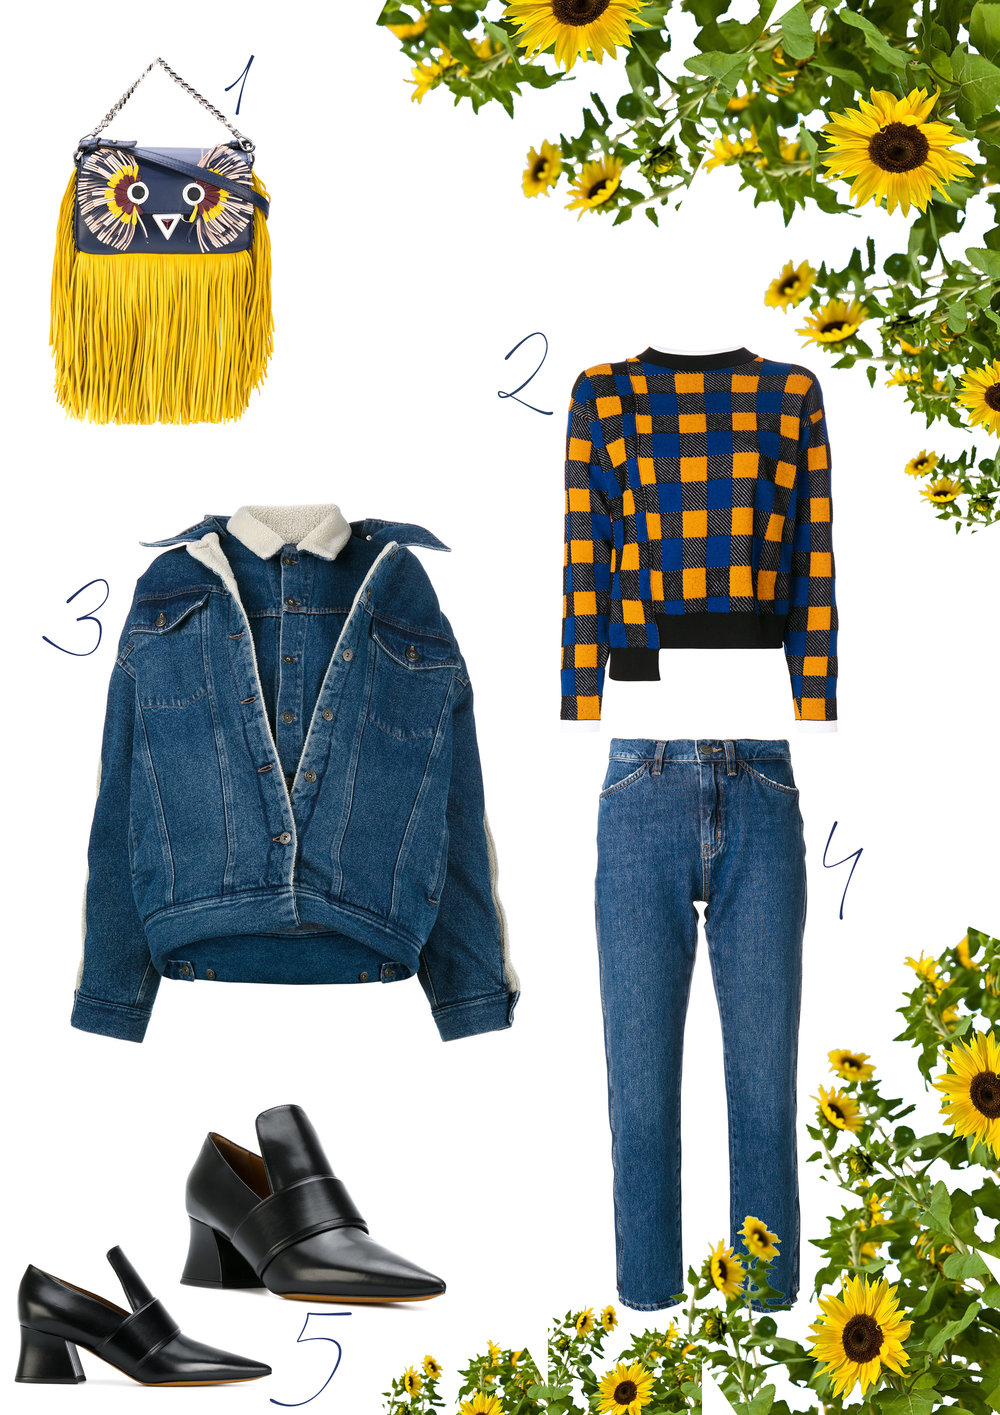 1. Fendi bag, find it here // 2. Marni jumper, find it here // 3. Y/Project denim jacket, find it here // 4. Mih jeans, find them here // 5. Givenchy loafers, find them here.